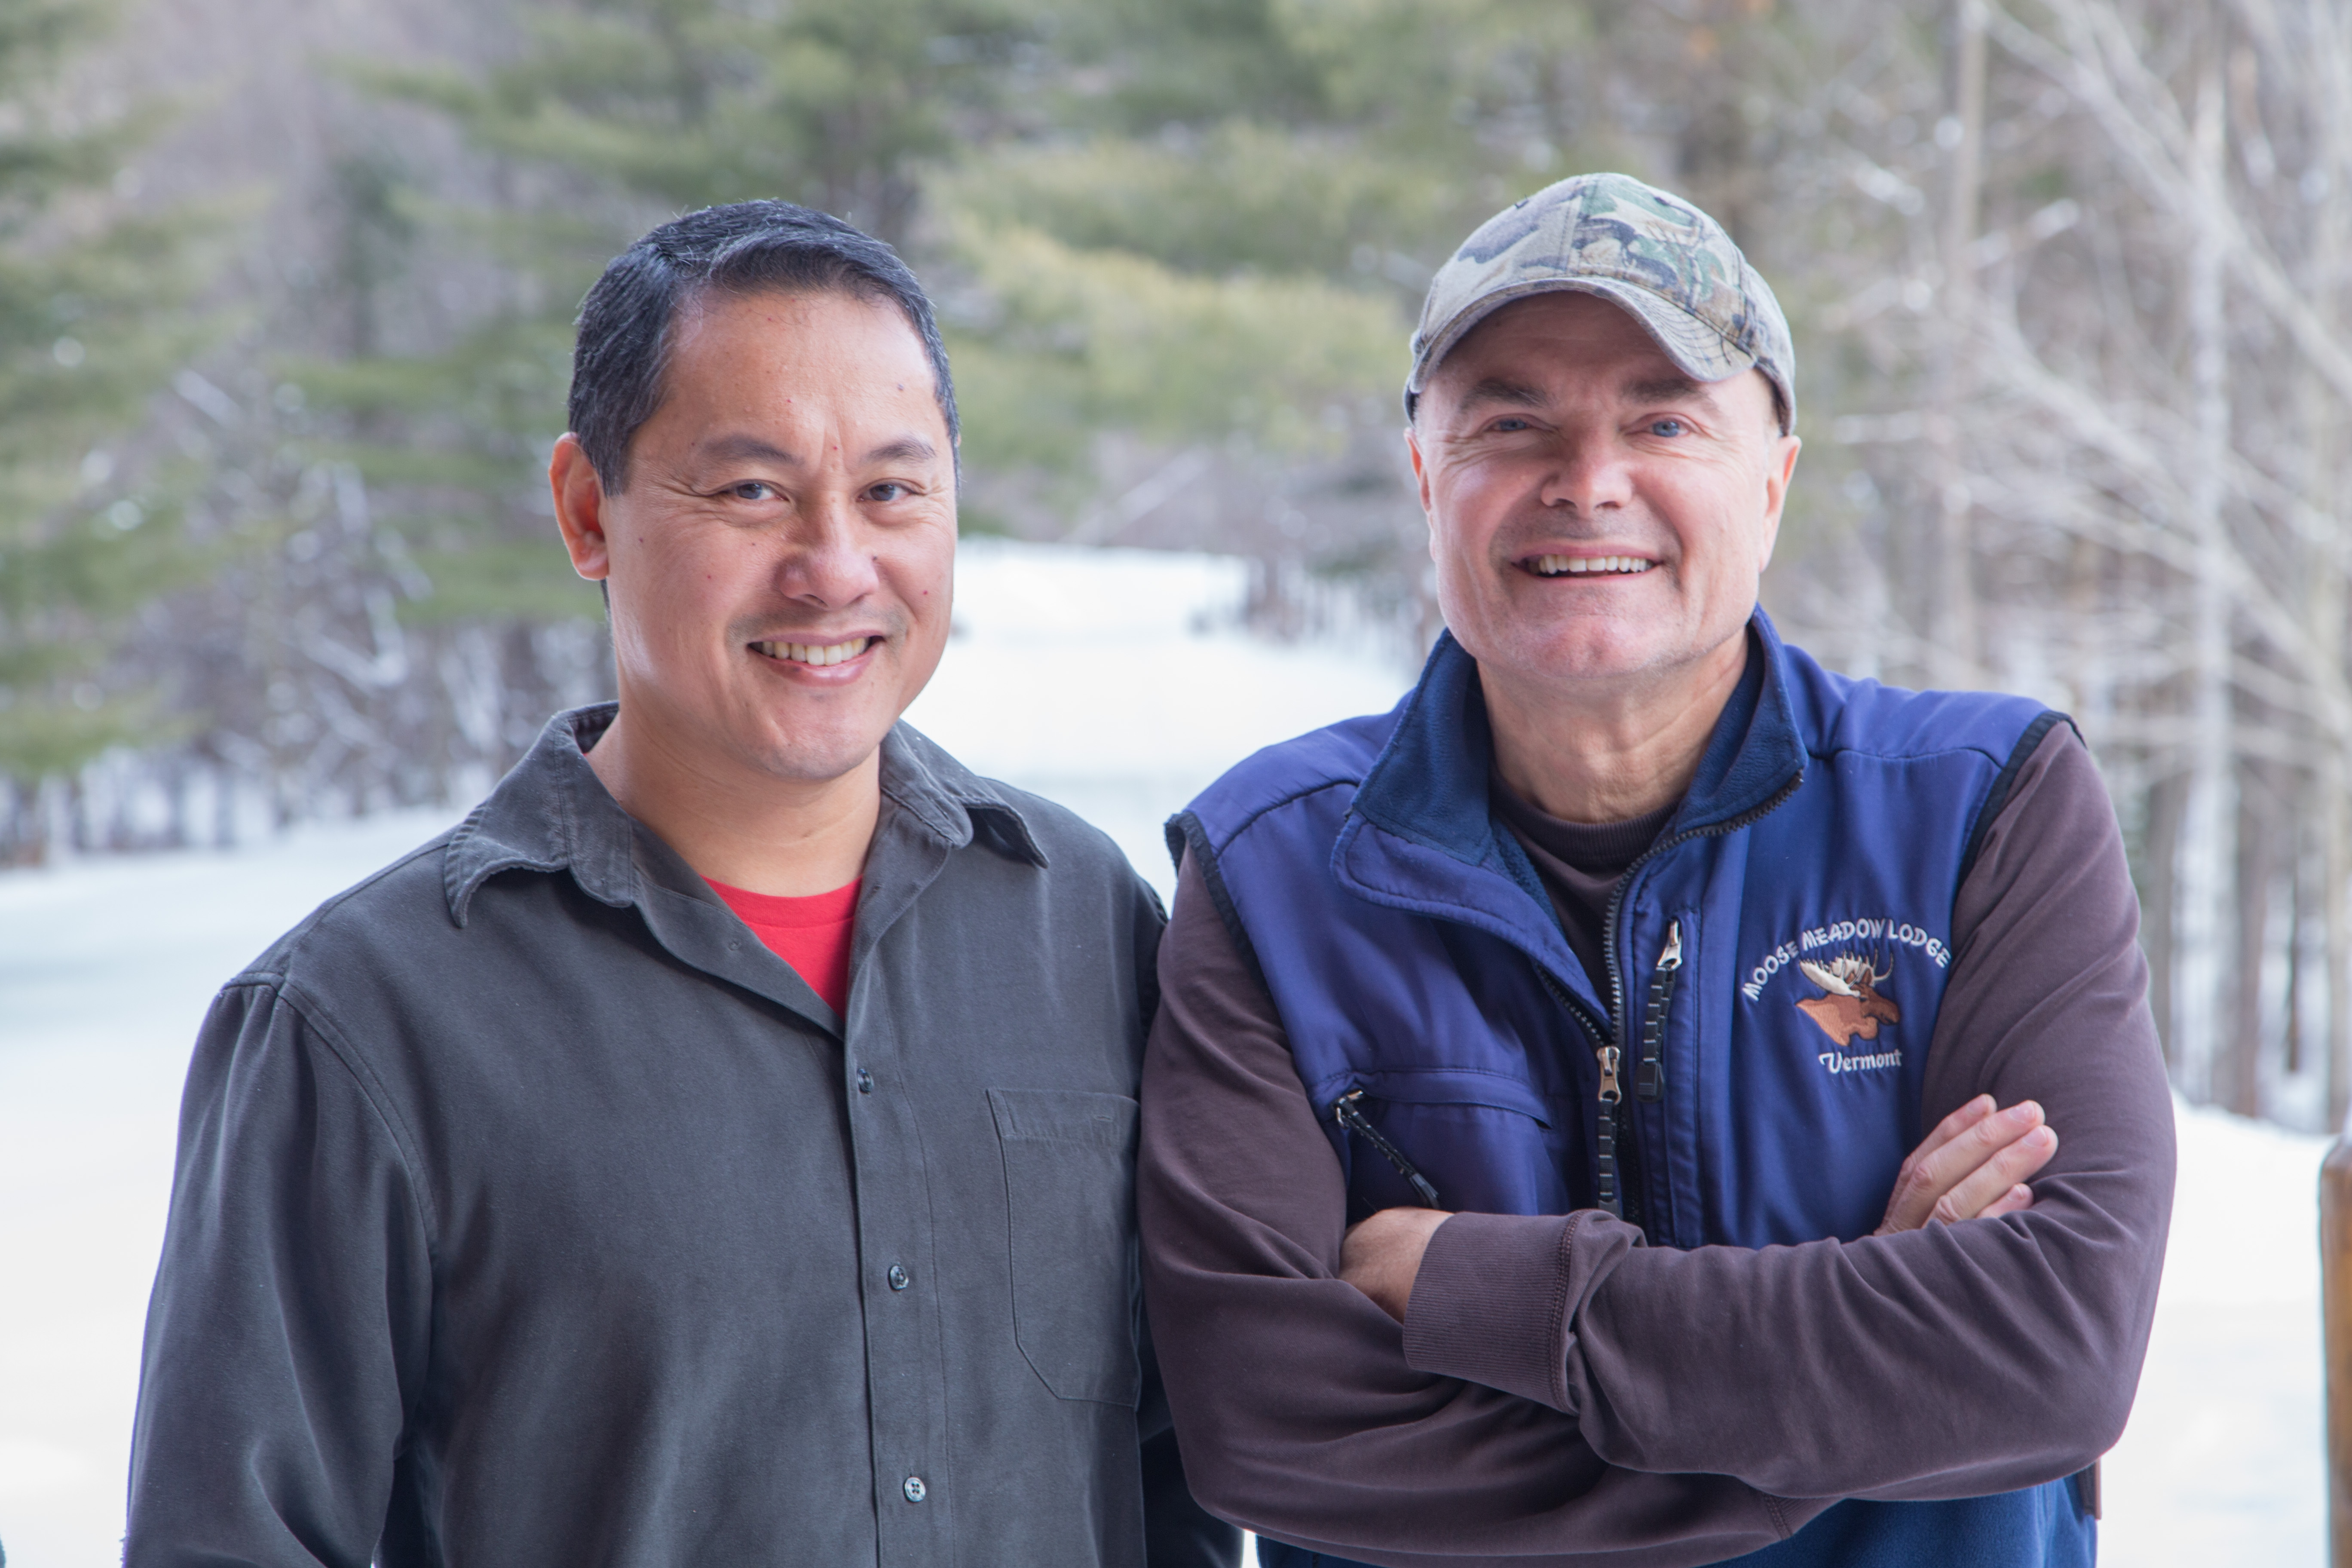 Moose Meadow Lodge Innkeepers - Willie Docto and Greg Trulson